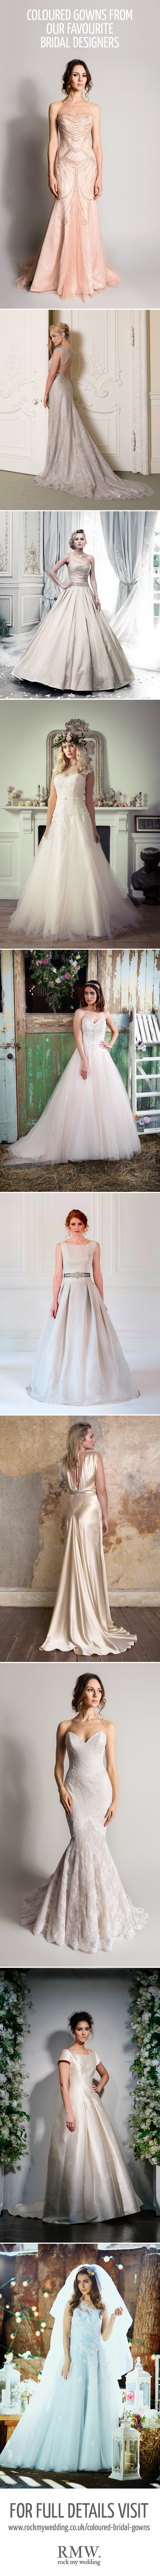 coloured-wedding-dress-inspiration